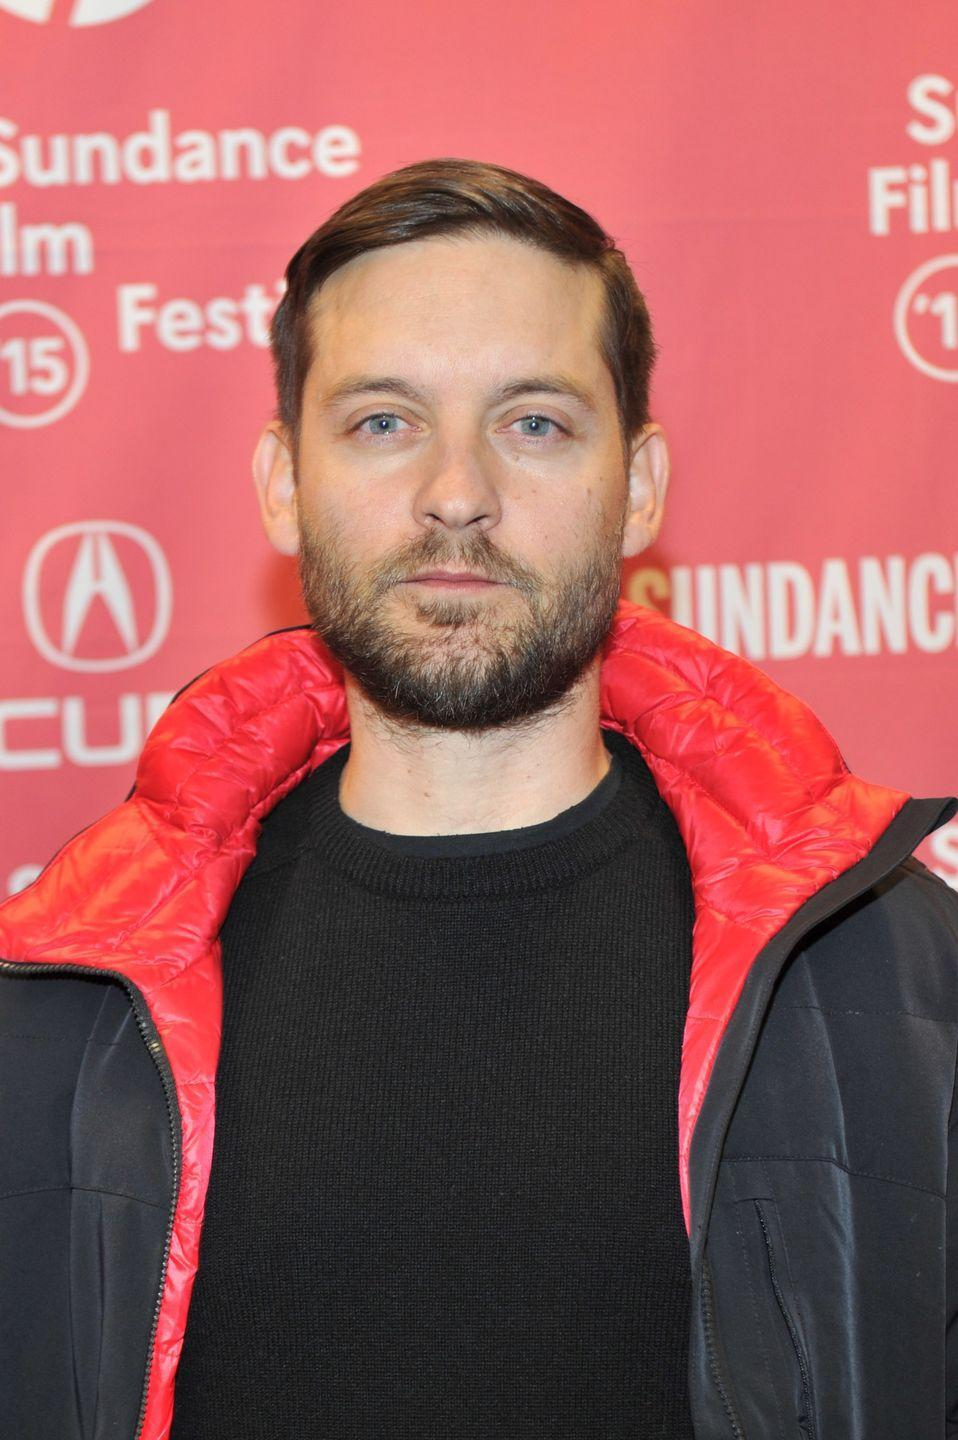 """<p>Tobey Maguire was dubbed <em>too </em>famous for his role in <em>Life of Pi </em>and was subsequently cut out of the movie after production. The film <a href=""""https://www.indiewire.com/2012/09/tobey-maguire-cut-from-ang-lees-life-of-pi-replaced-with-rising-star-rafe-spall-106405/"""" rel=""""nofollow noopener"""" target=""""_blank"""" data-ylk=""""slk:reshot Maguire's scenes"""" class=""""link rapid-noclick-resp"""">reshot Maguire's scenes</a> with a lesser known actor, Rafe Spall.</p>"""